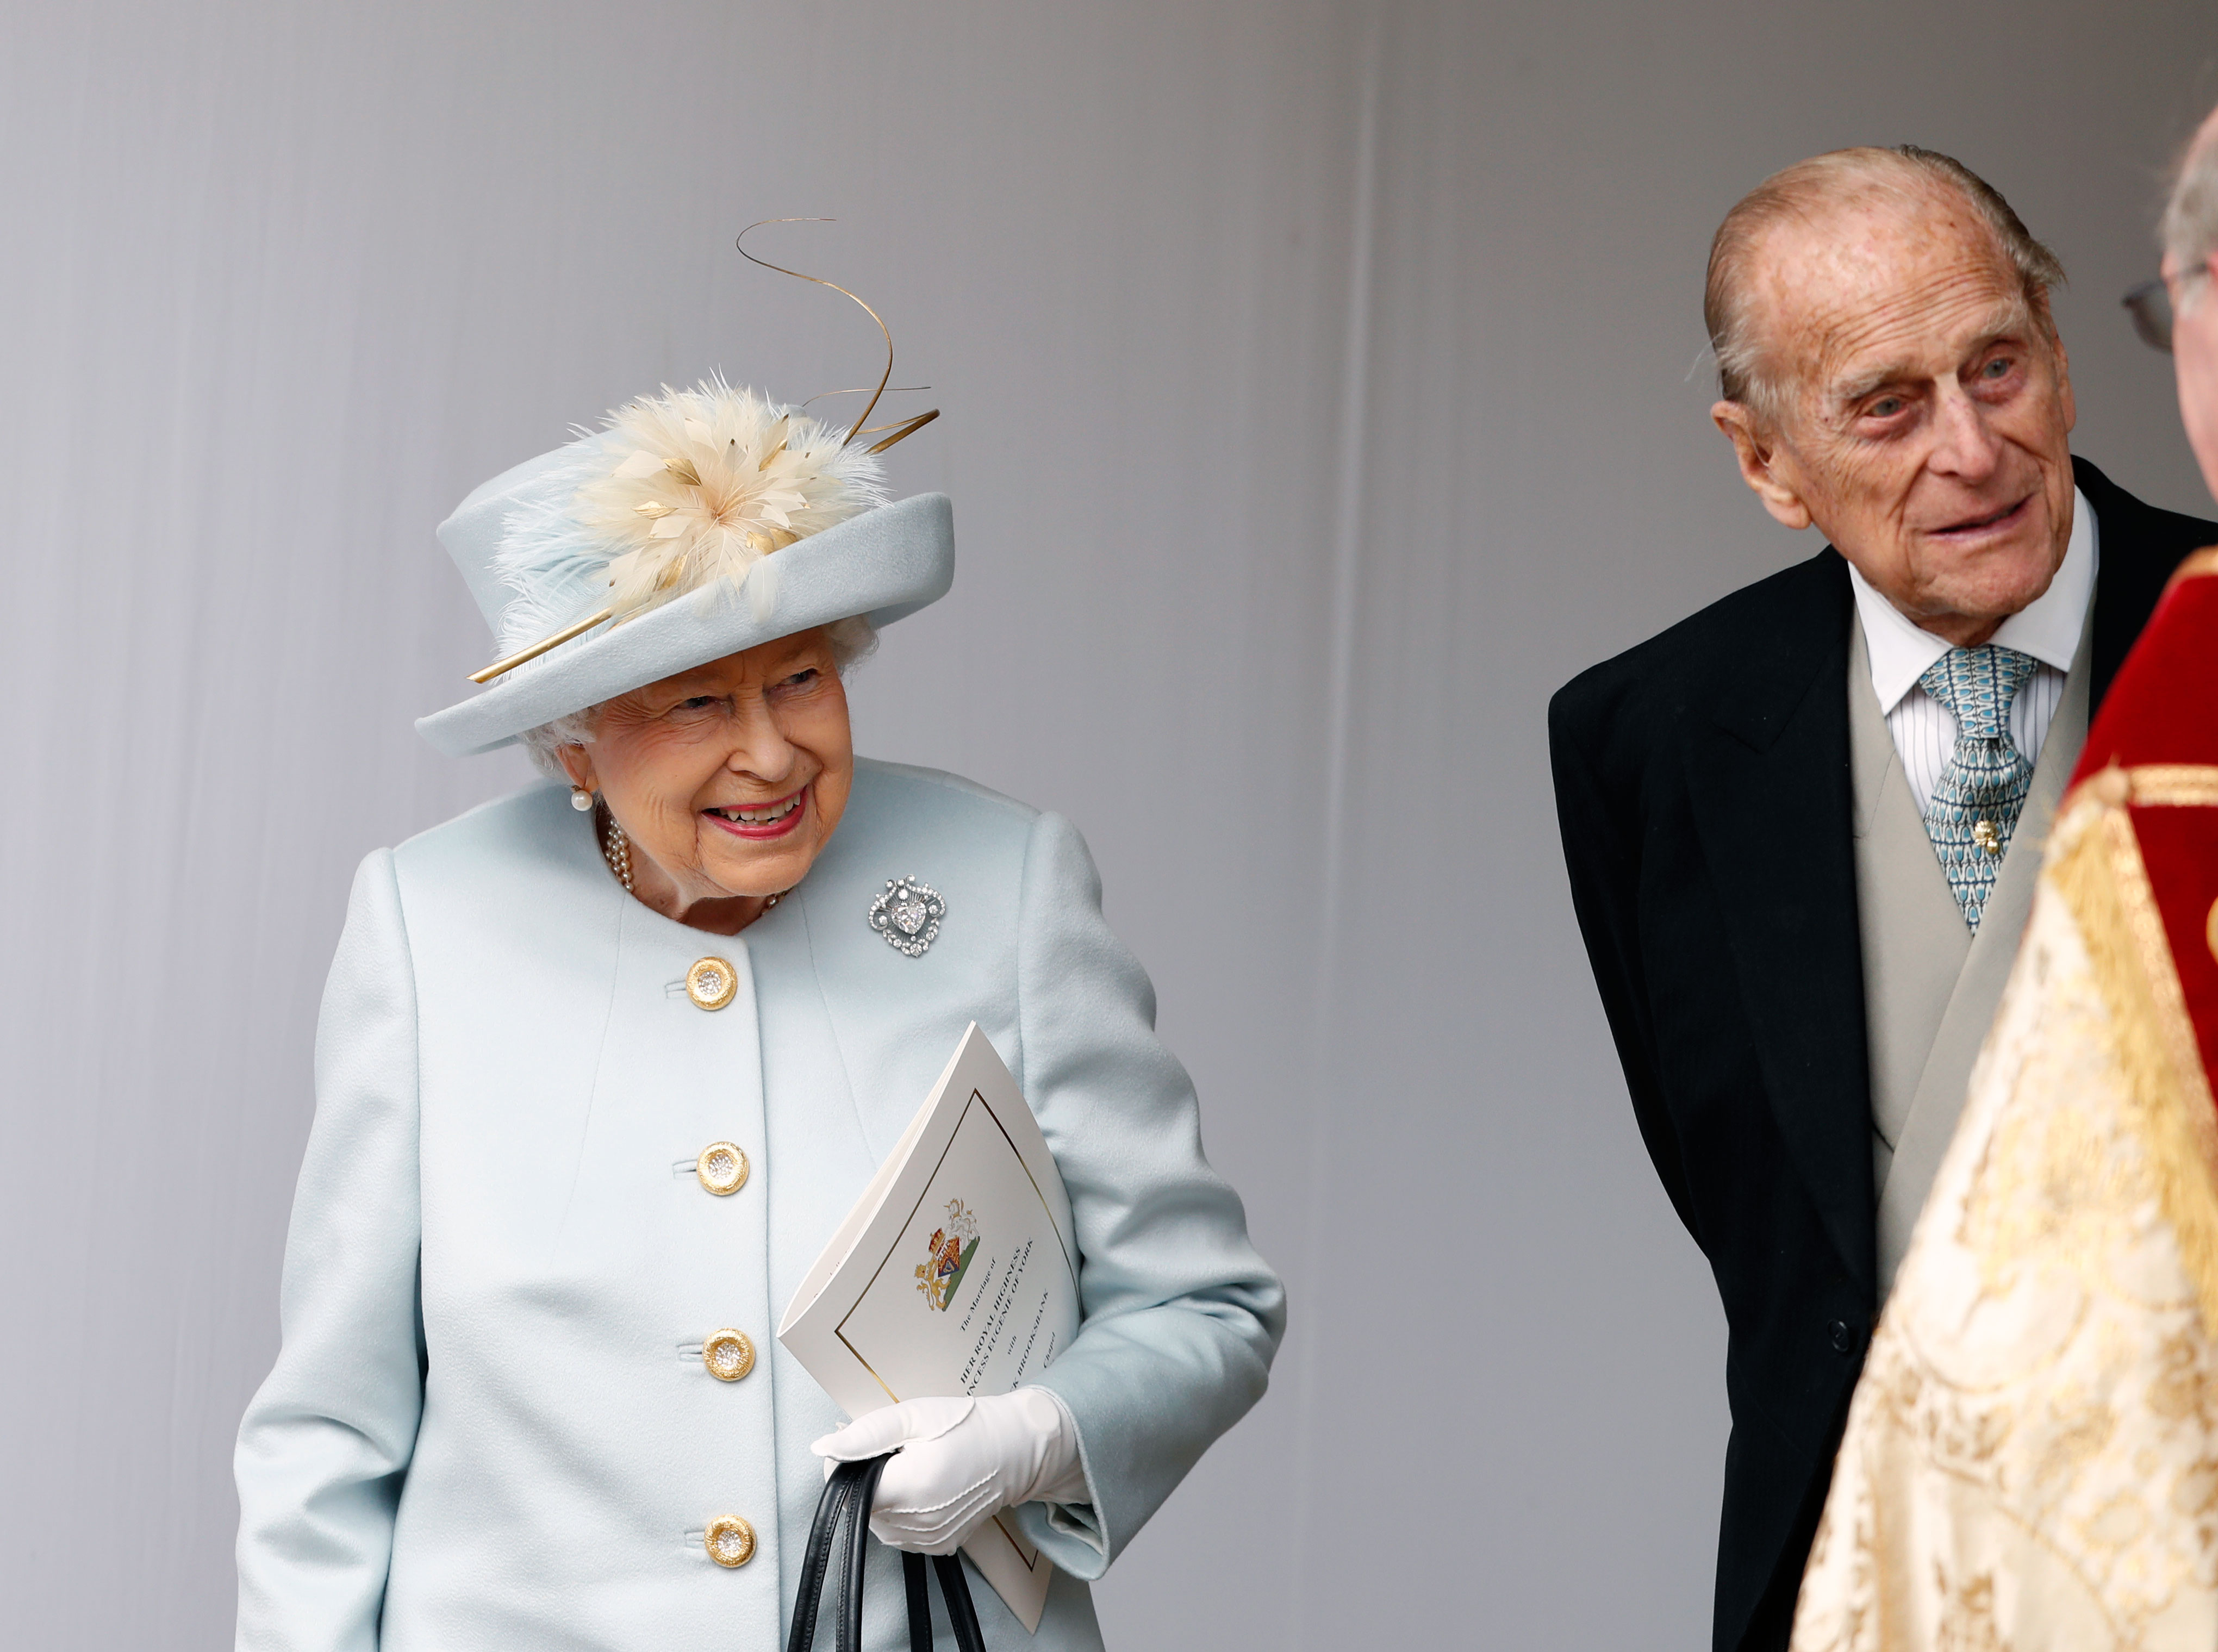 Prince Harry Duchess Meghan Wish Queen Elizabeth Happy 93rd Birthday - Queen Elizabeth II and Prince Philip, Duke of Edinburgh look on after the wedding of Princess Eugenie of York and Mr. Jack Brooksbank at St. George's Chapel on October 12, 2018 in Windsor, England.